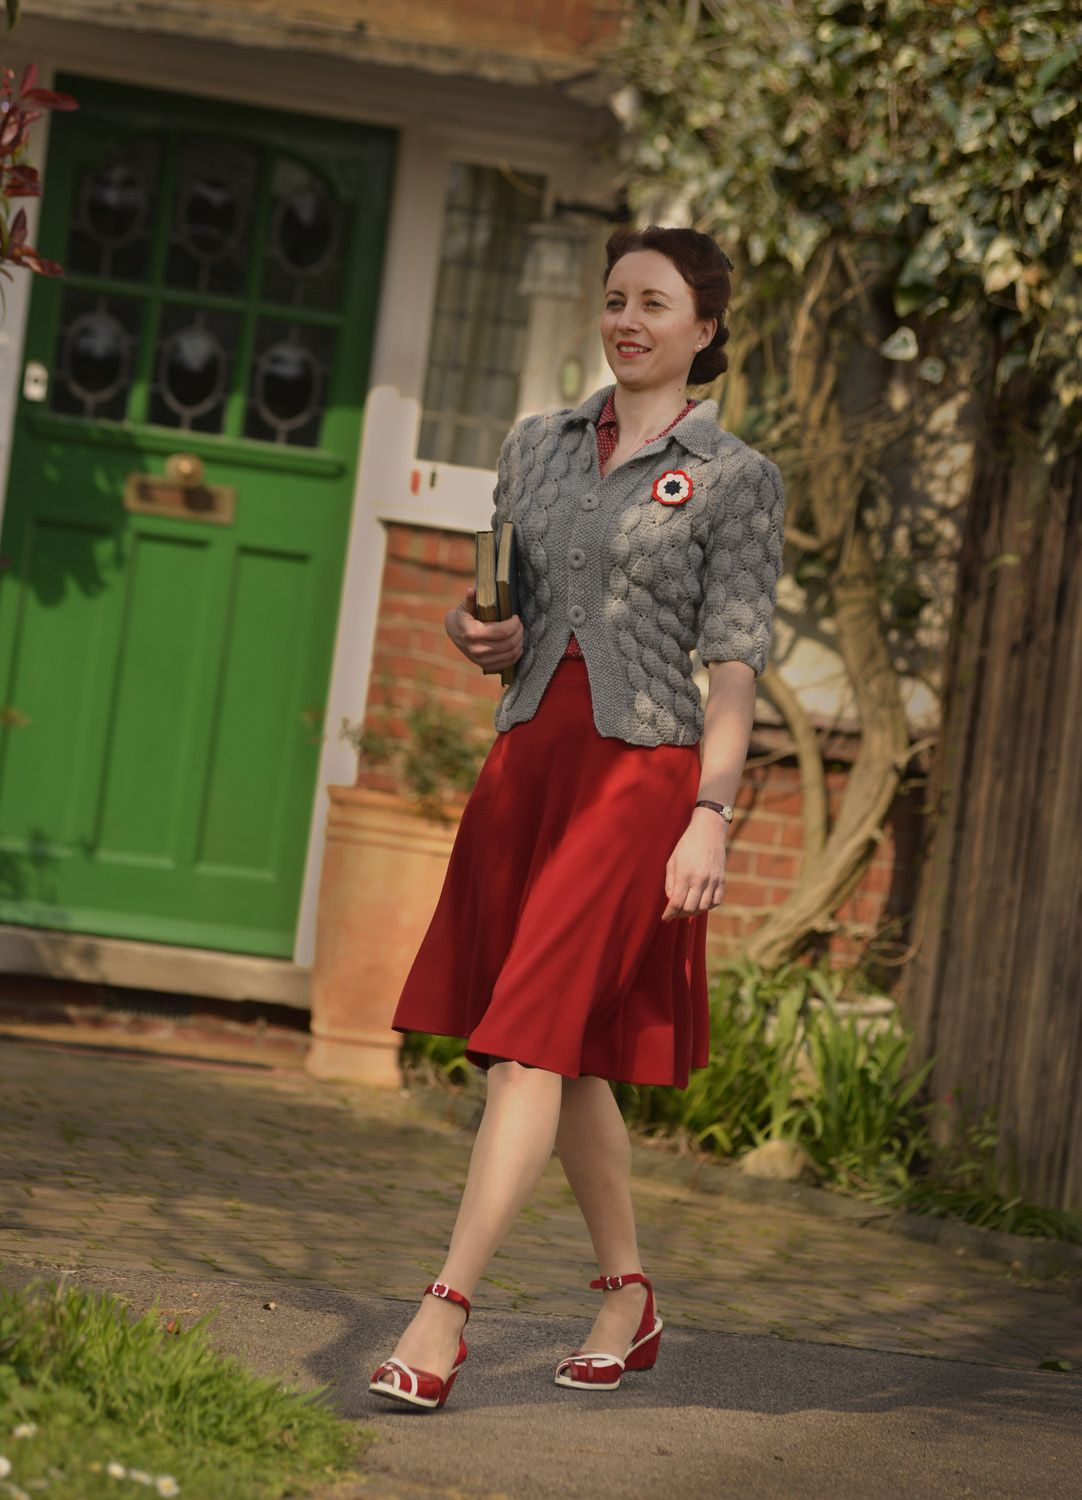 The Real And The Inspired By 1940s Fashion: Look Inspired By Home Fires. Cardigan Knitted From A 1940s